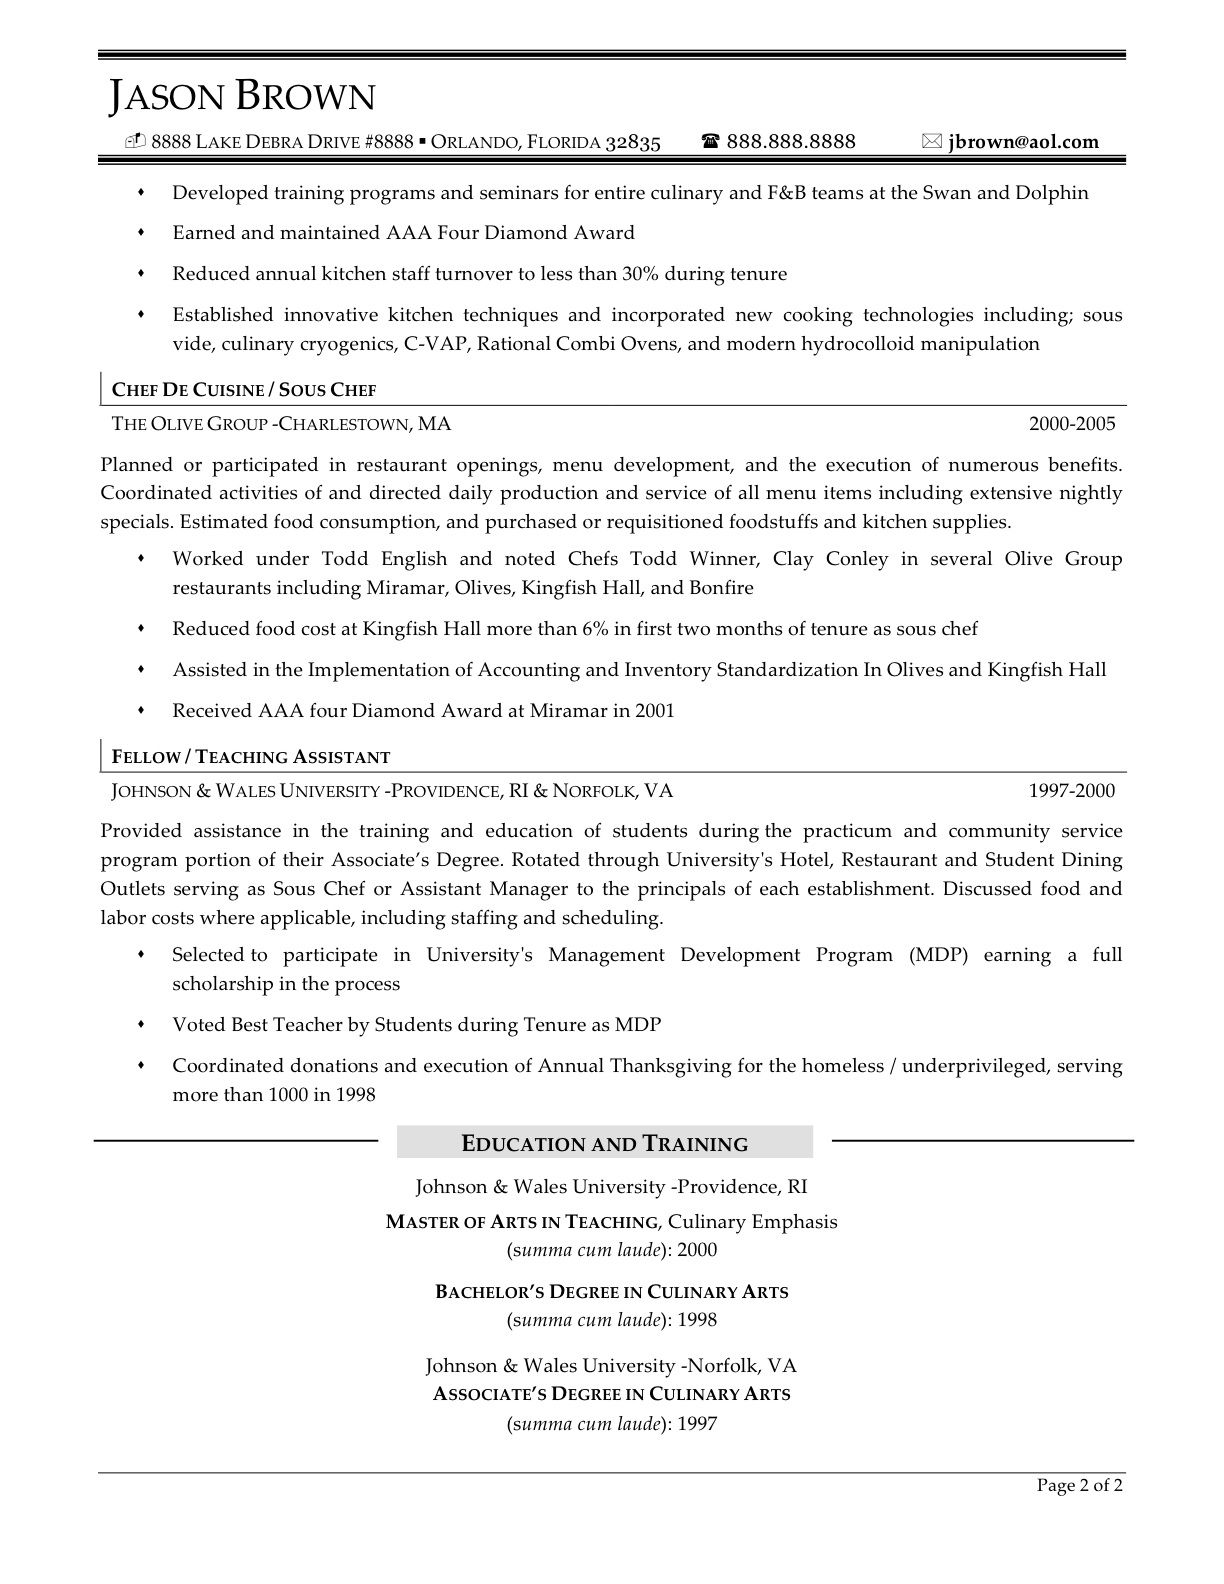 Executive Format Resume Template Chef Cook Resume Examples  Httpwwwjobresumewebsitechefcook